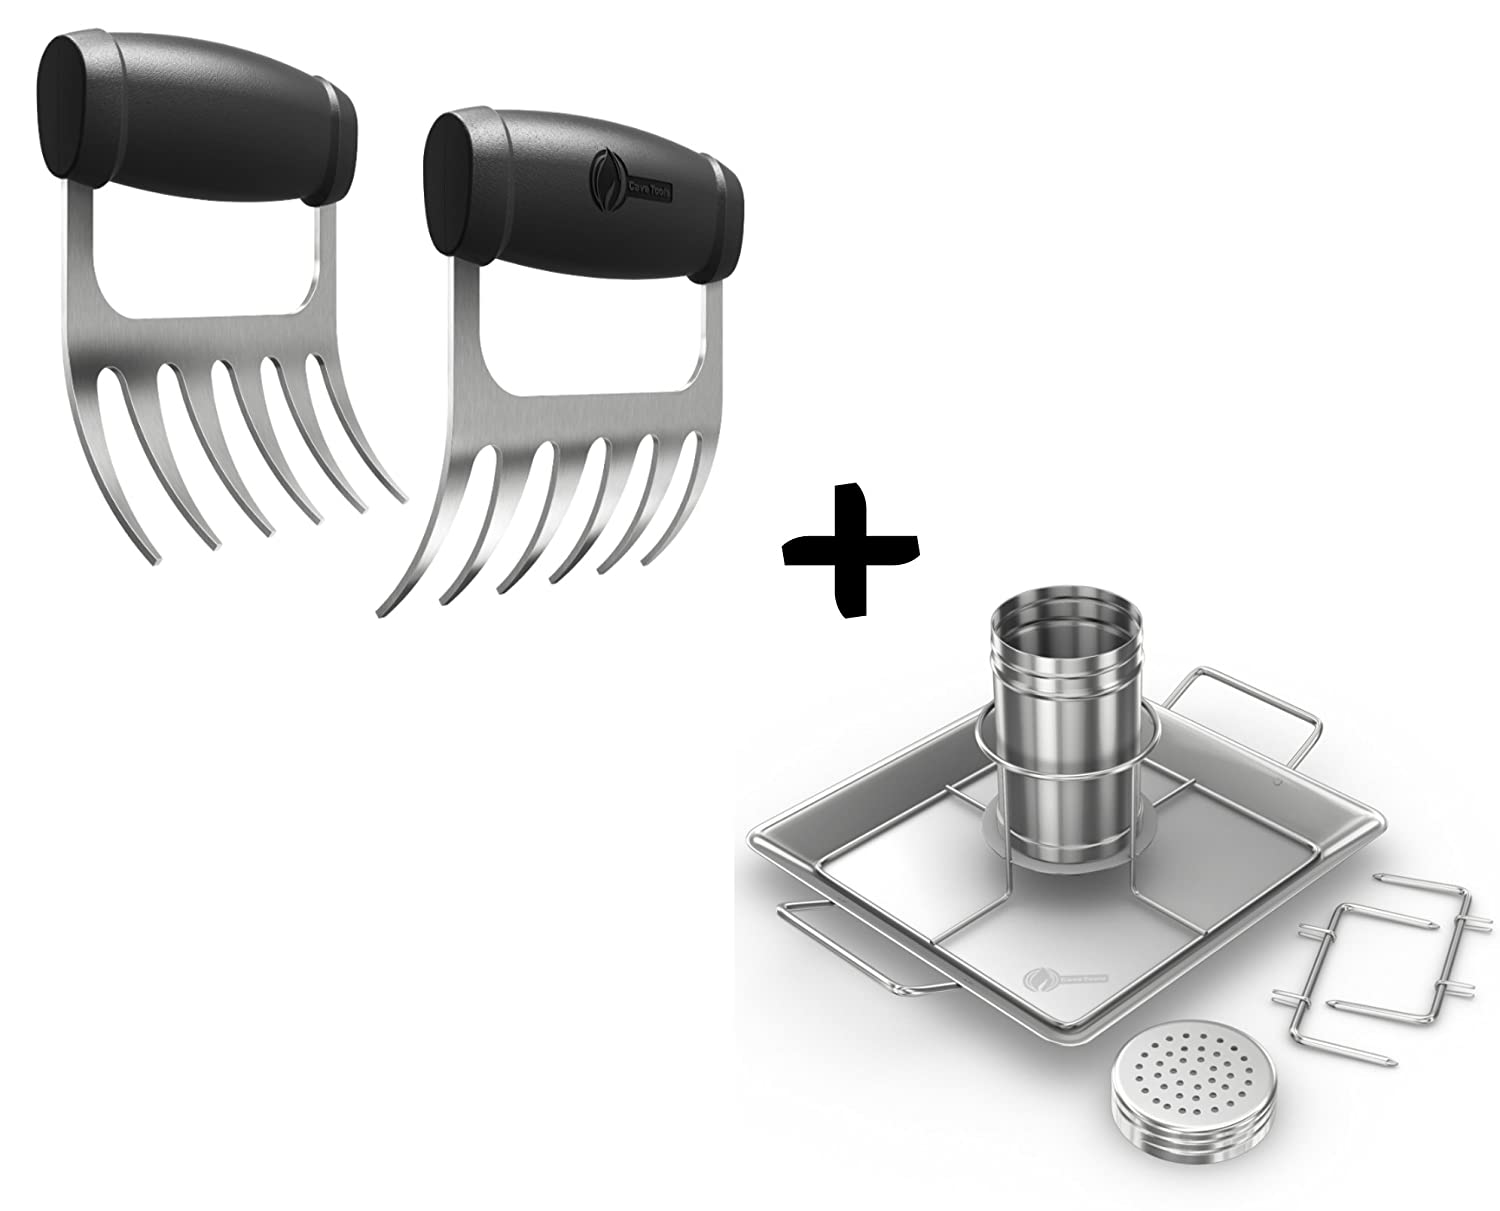 Meat Claws - STAINLESS STEEL PULLED PORK SHREDDERS + Beer Can Chicken Roaster Rack - INCLUDES 4 VEGETABLE SPIKES - Vertical BBQ Roasting Holder for Grill Smoker or Oven - Dishwasher Safe